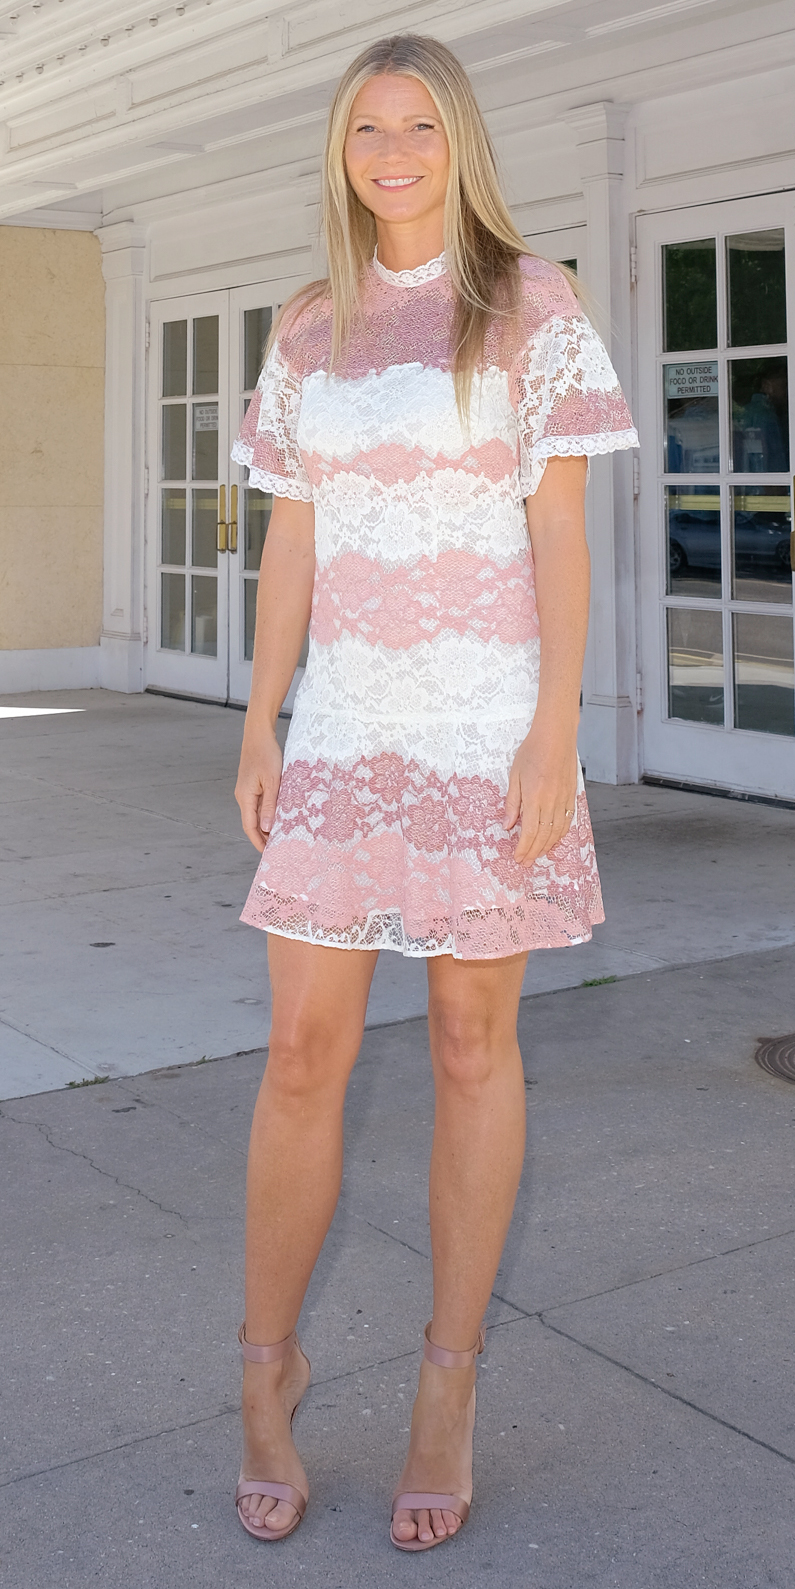 In a pink and white minidress, 2017